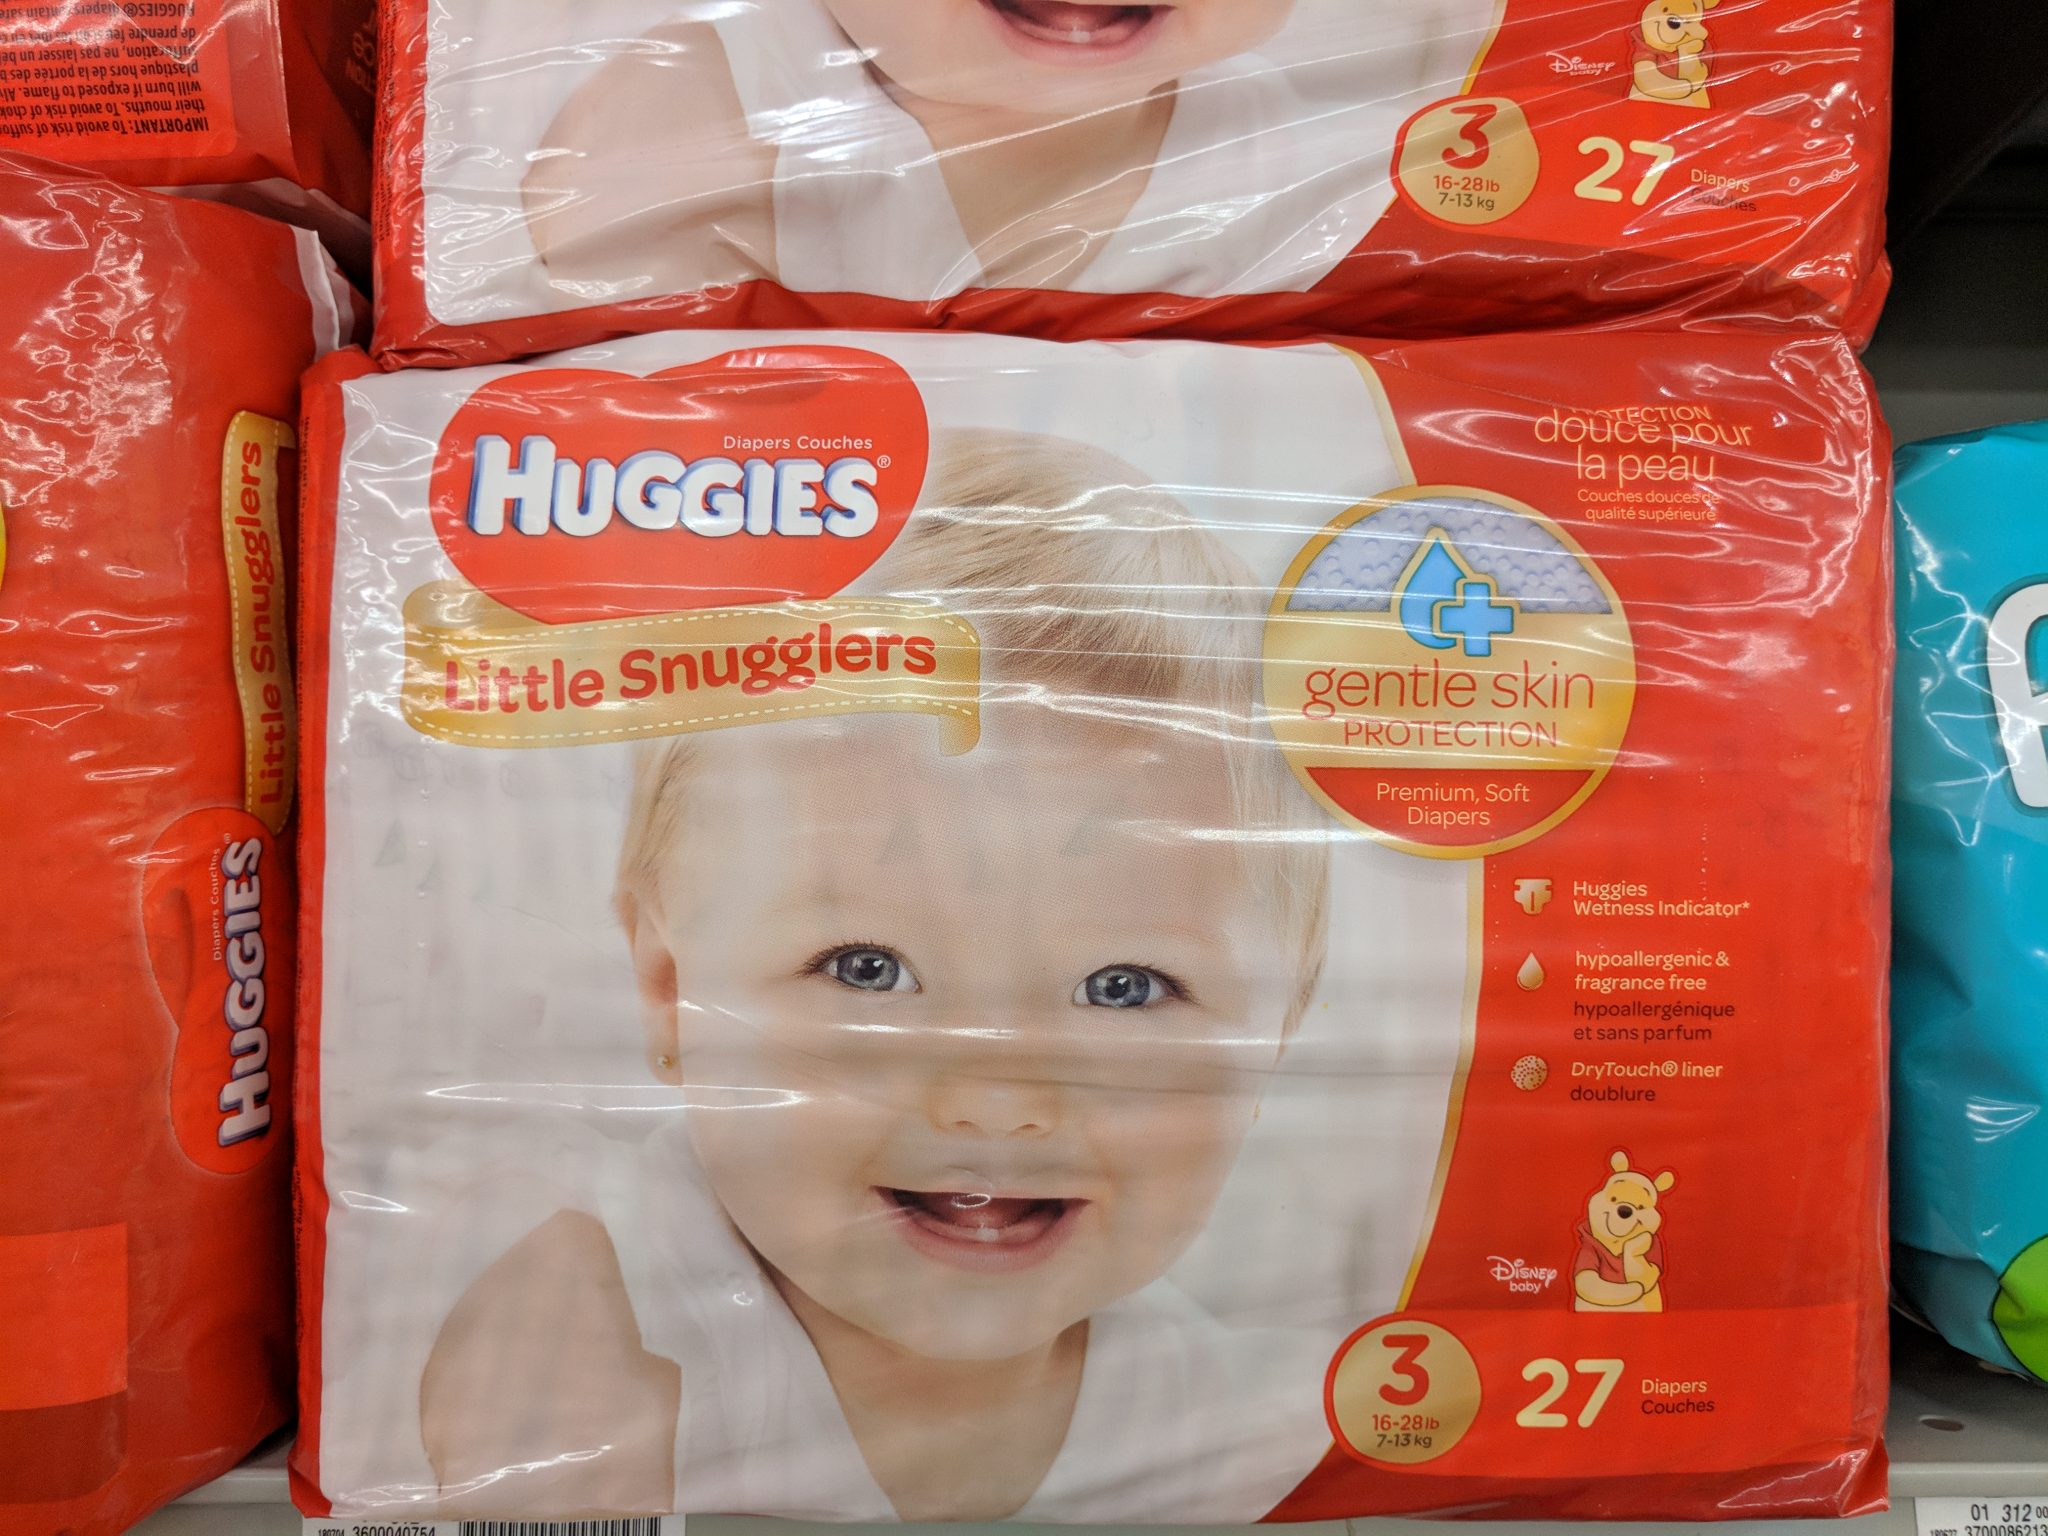 Huggies Diapers and Huggies Pull Ups ONLY $2.83 at Rite Aid! GO! GO! GO!